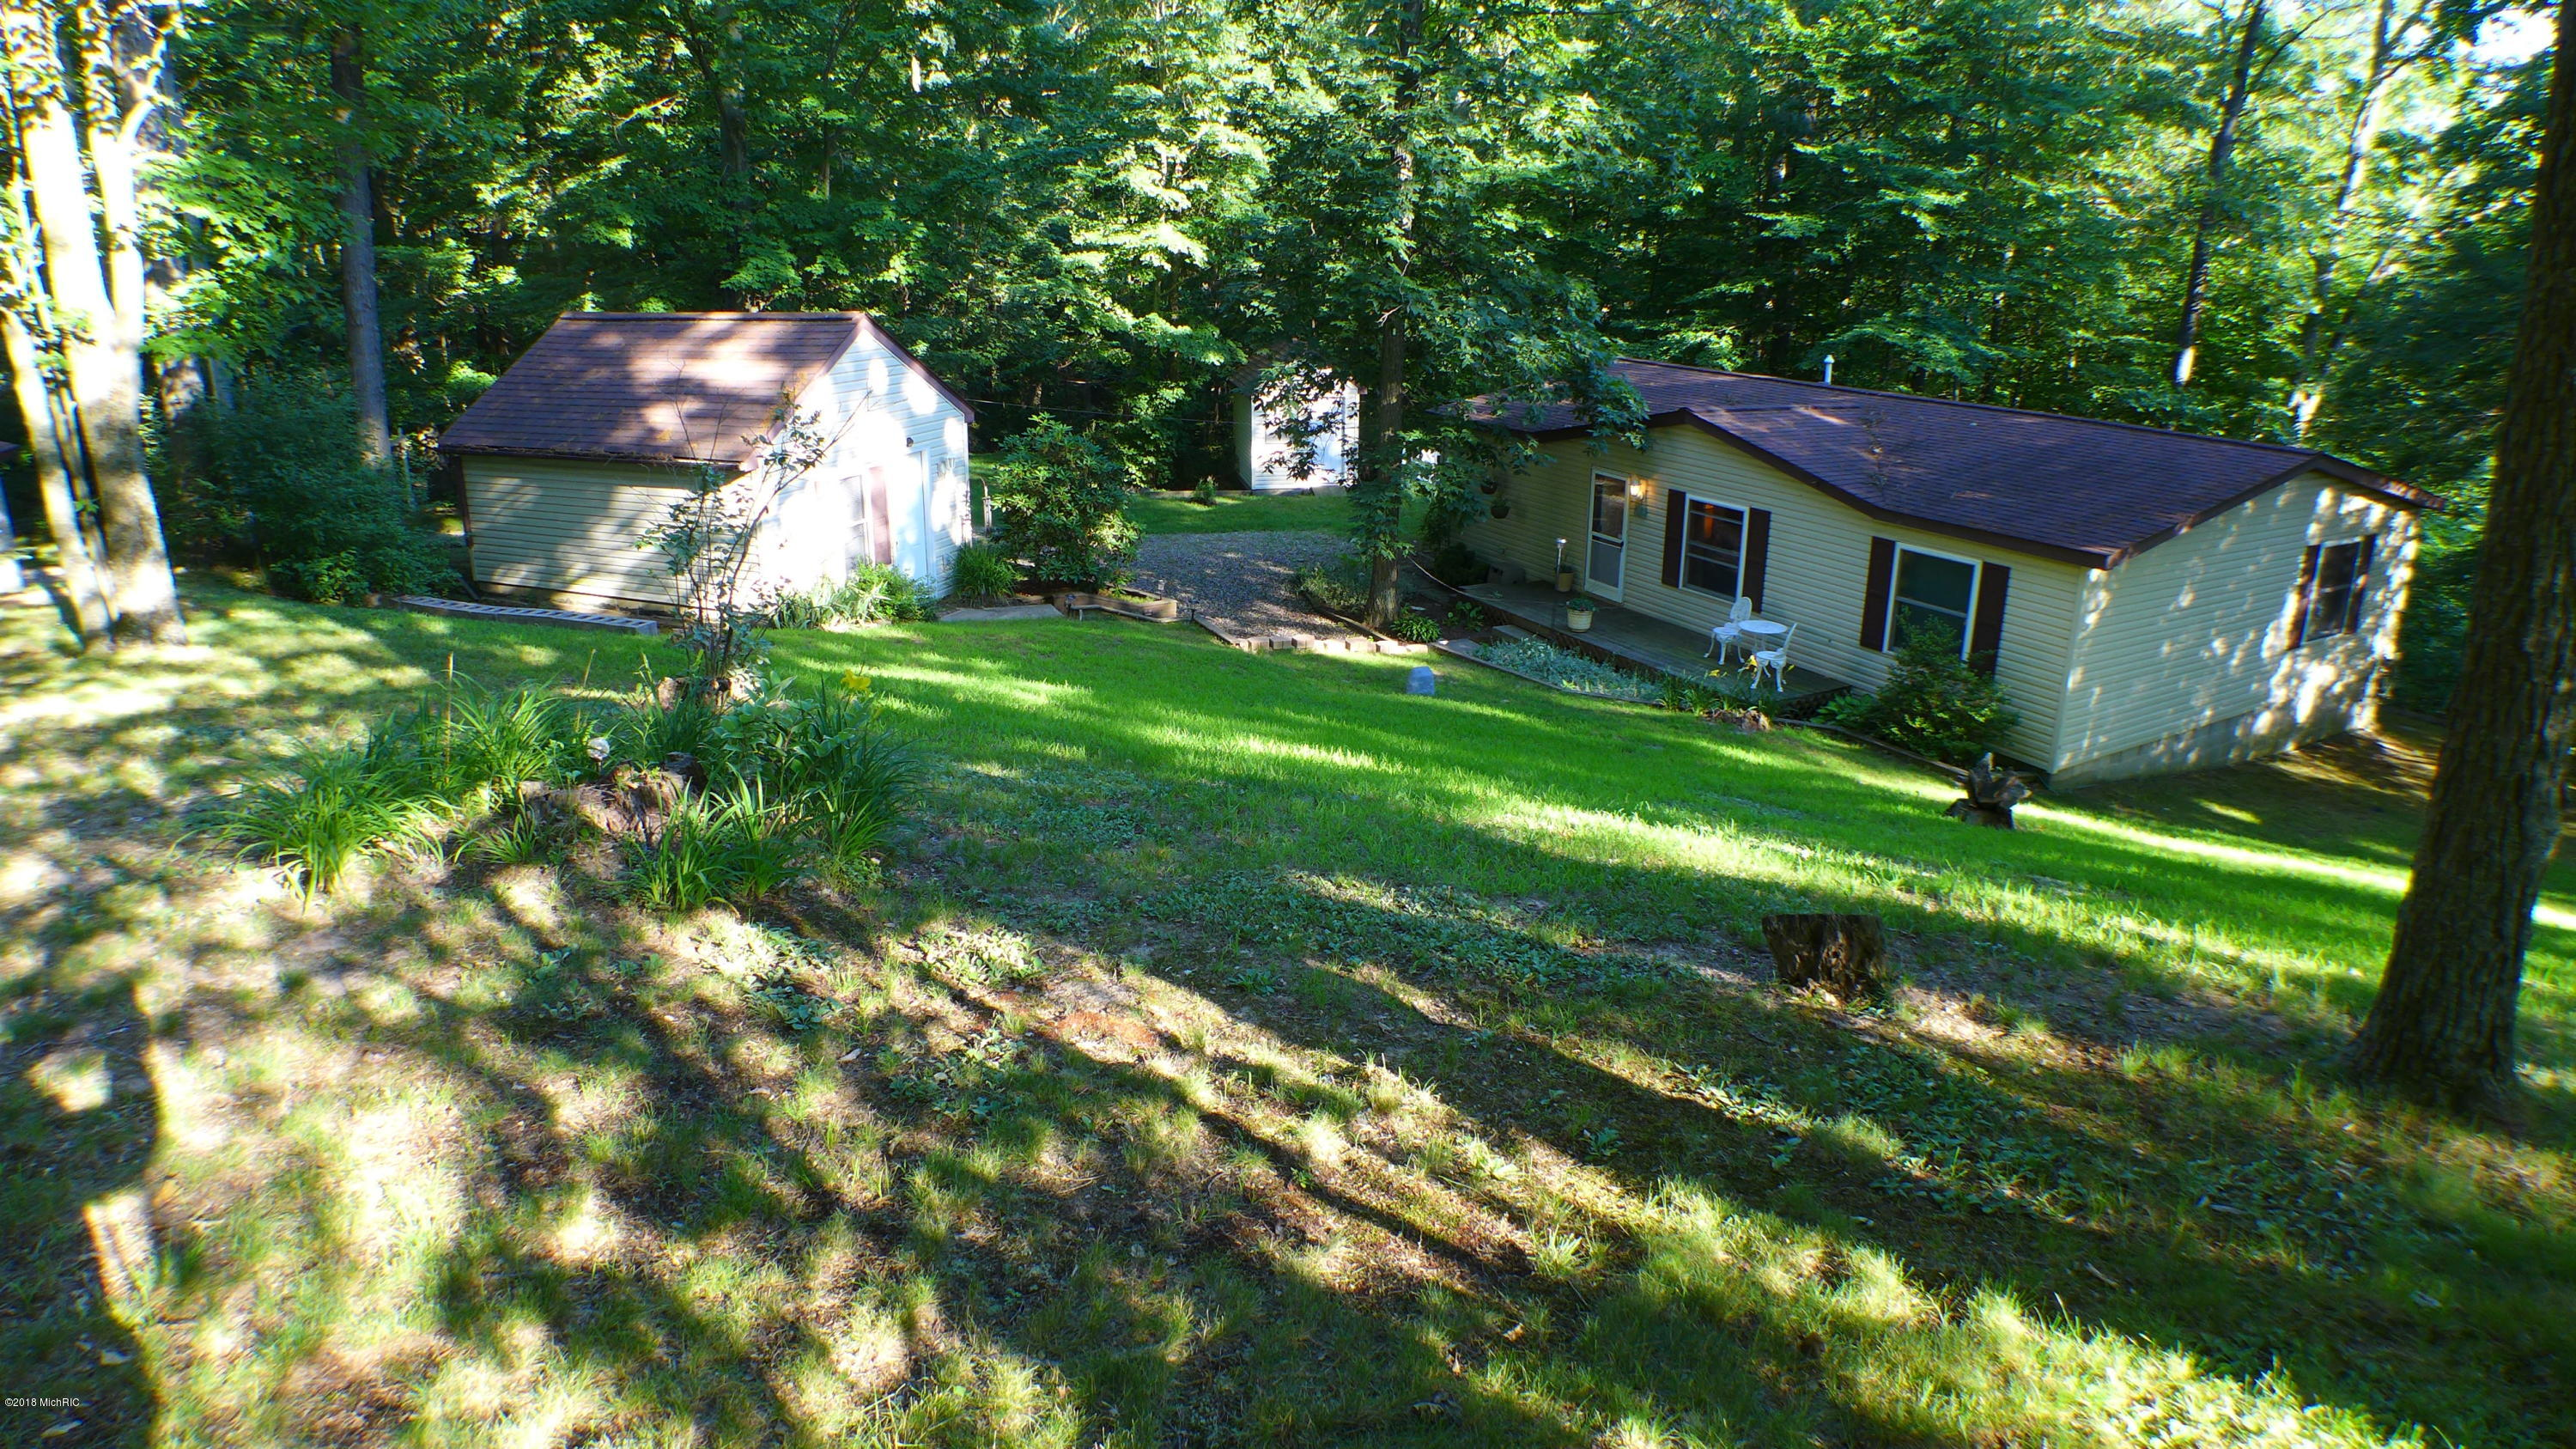 8500 Lammers , Delton, MI 49046 Photo 8